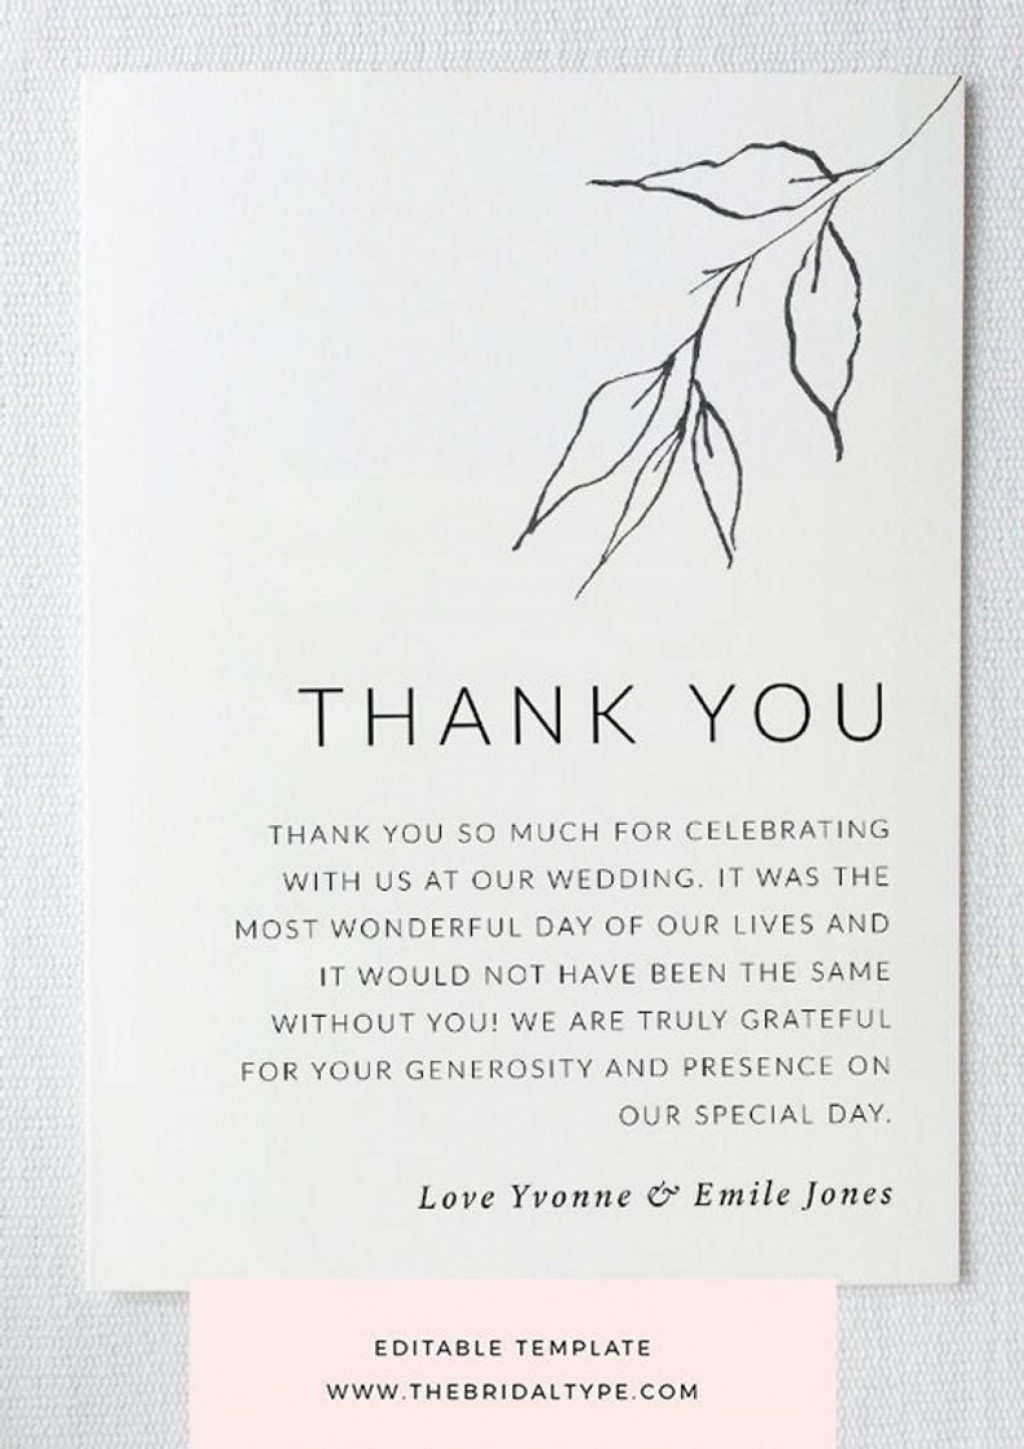 001 Phenomenal Thank You Note Format Wedding High Resolution  Example Card Wording Not Attending Sample For GiftLarge